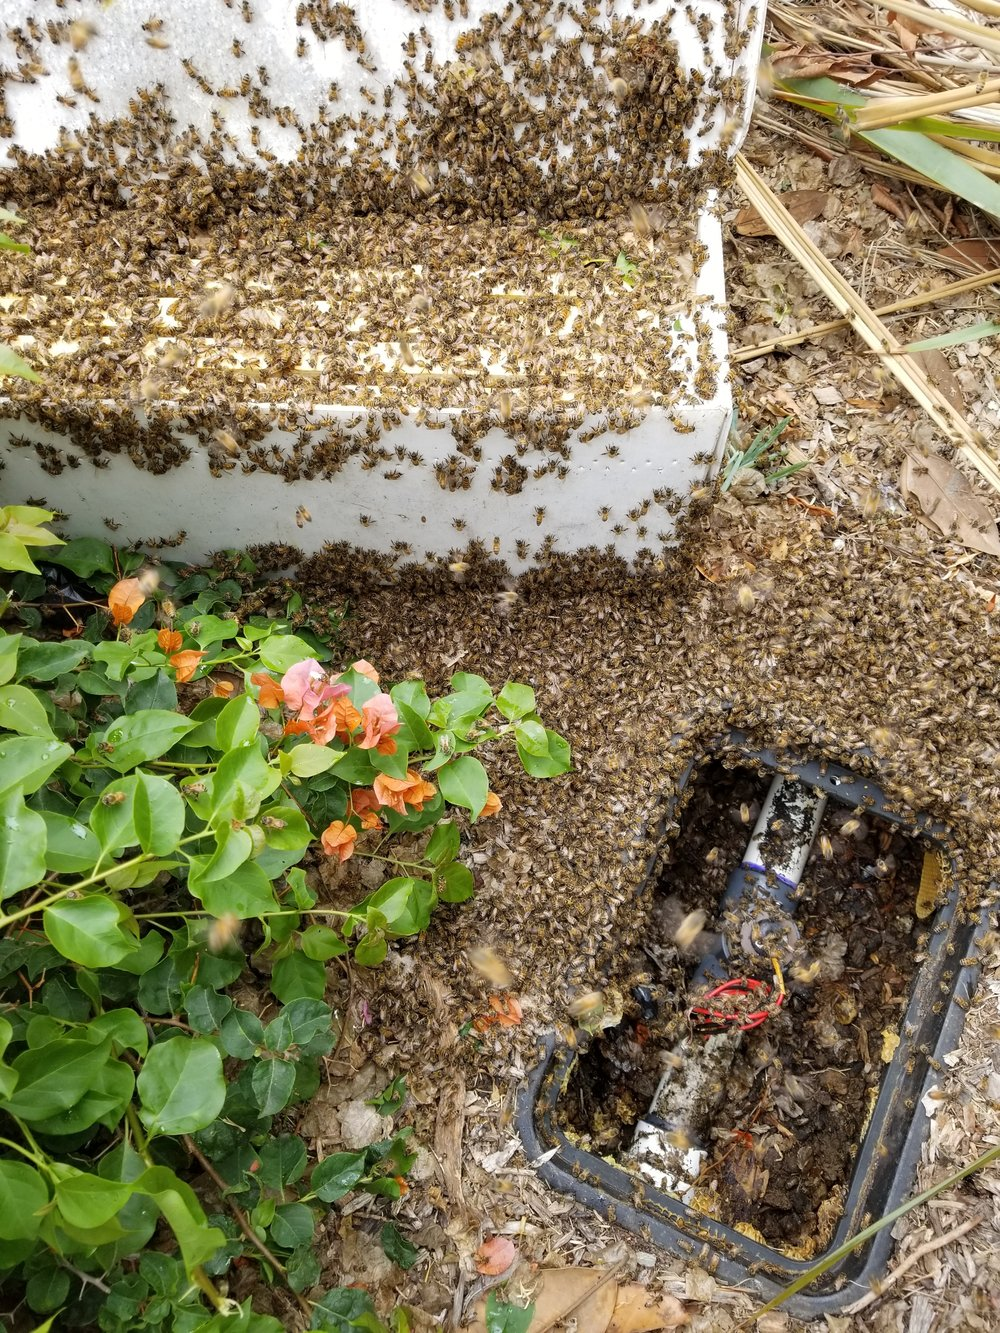 HoneY Bee Rescue, removal, and relocation in ventura county